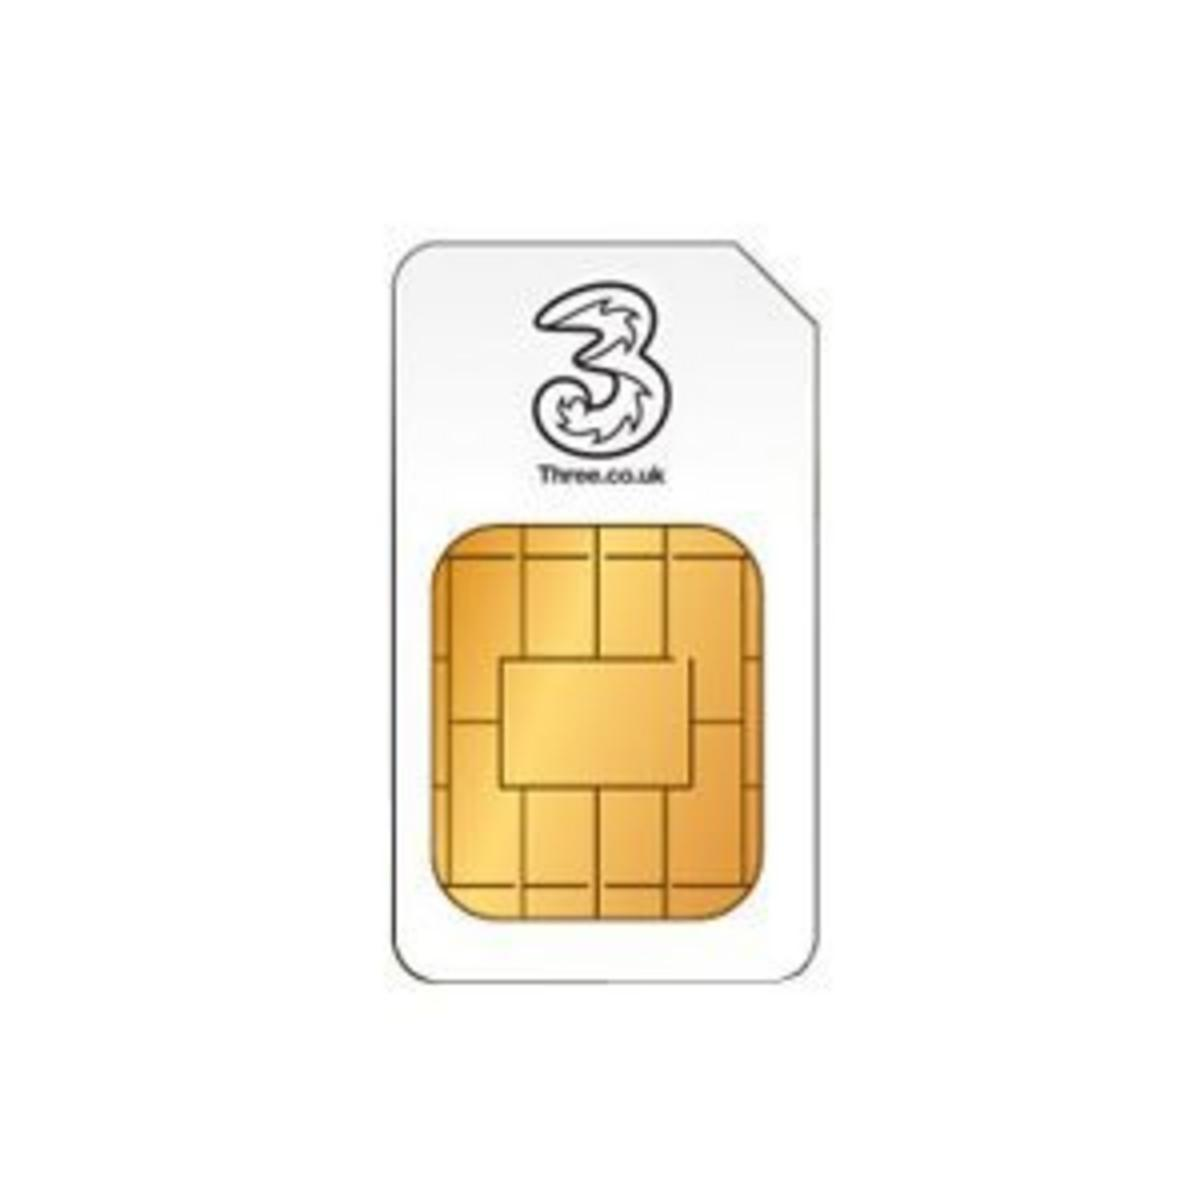 Virgin mobile sim only deals for existing customers